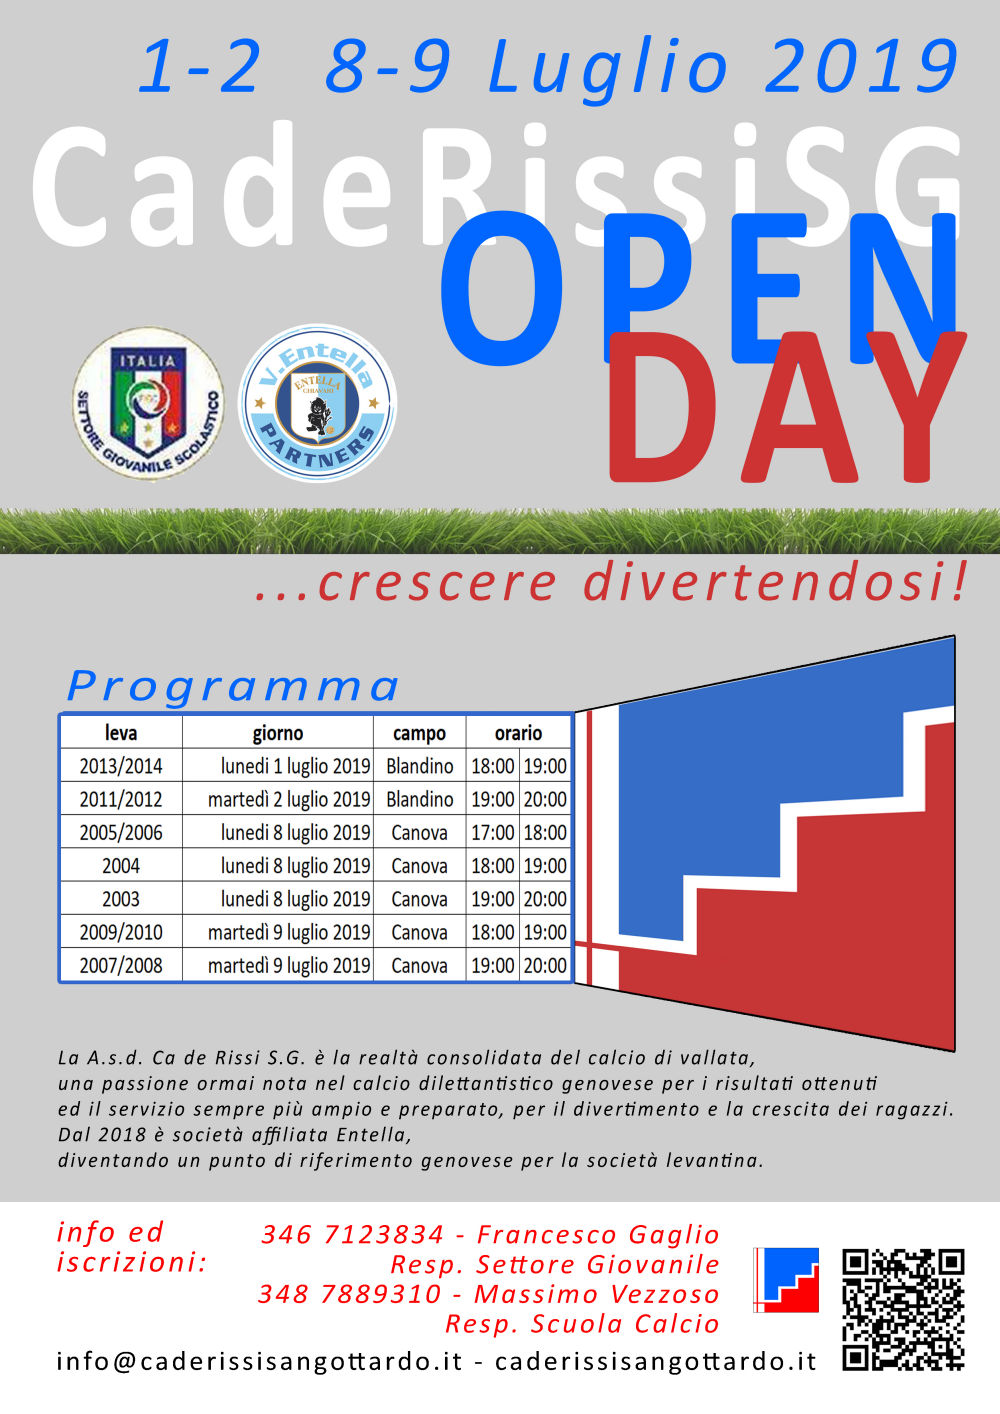 2019 caderissi openday sito rev2